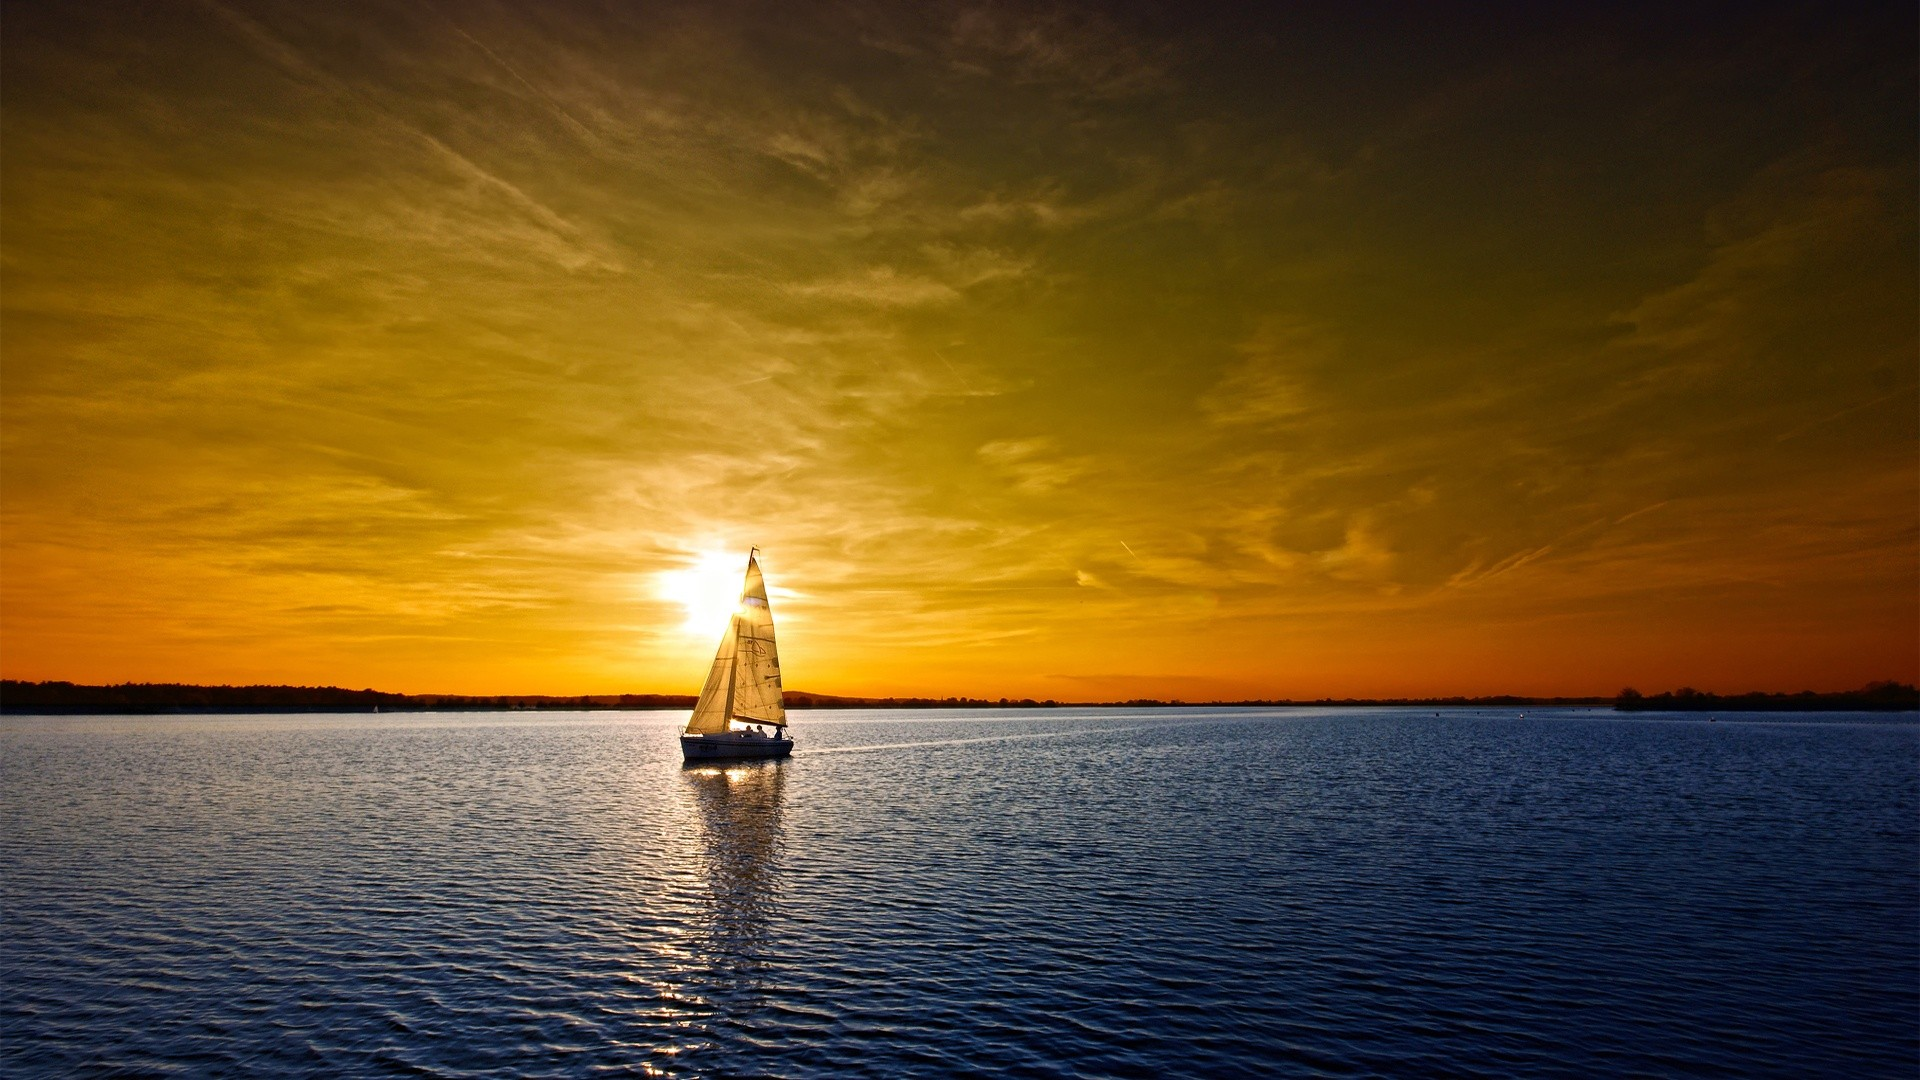 Couple-Landscape-Sailboat-Heaven-Landscapes-1920x1080-wallpaper-wp36012143